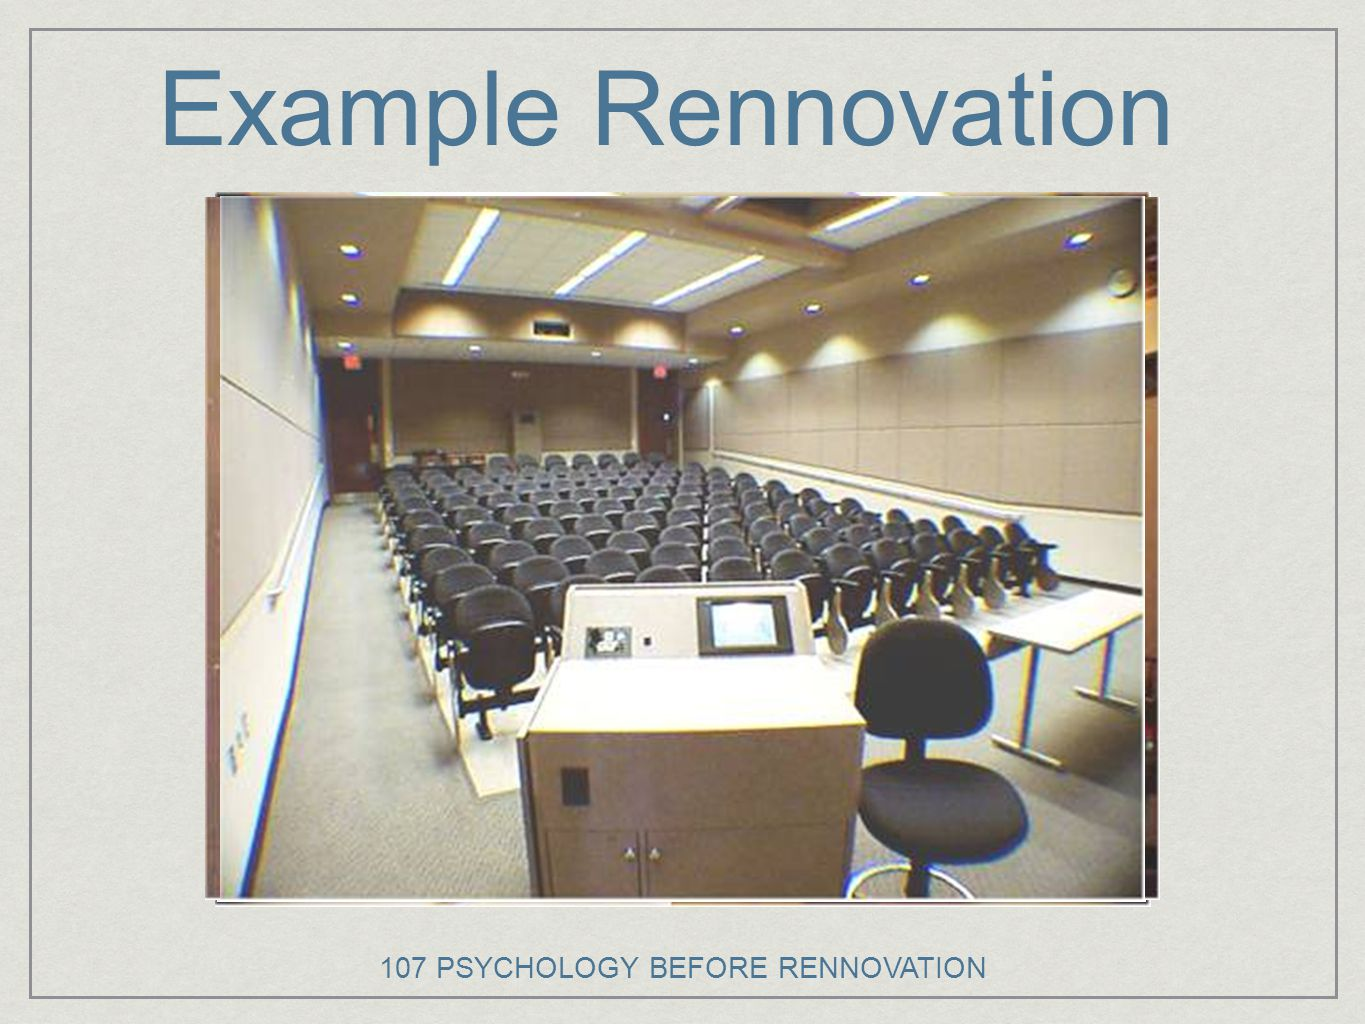 Example Rennovation 107 PSYCHOLOGY BEFORE RENNOVATION